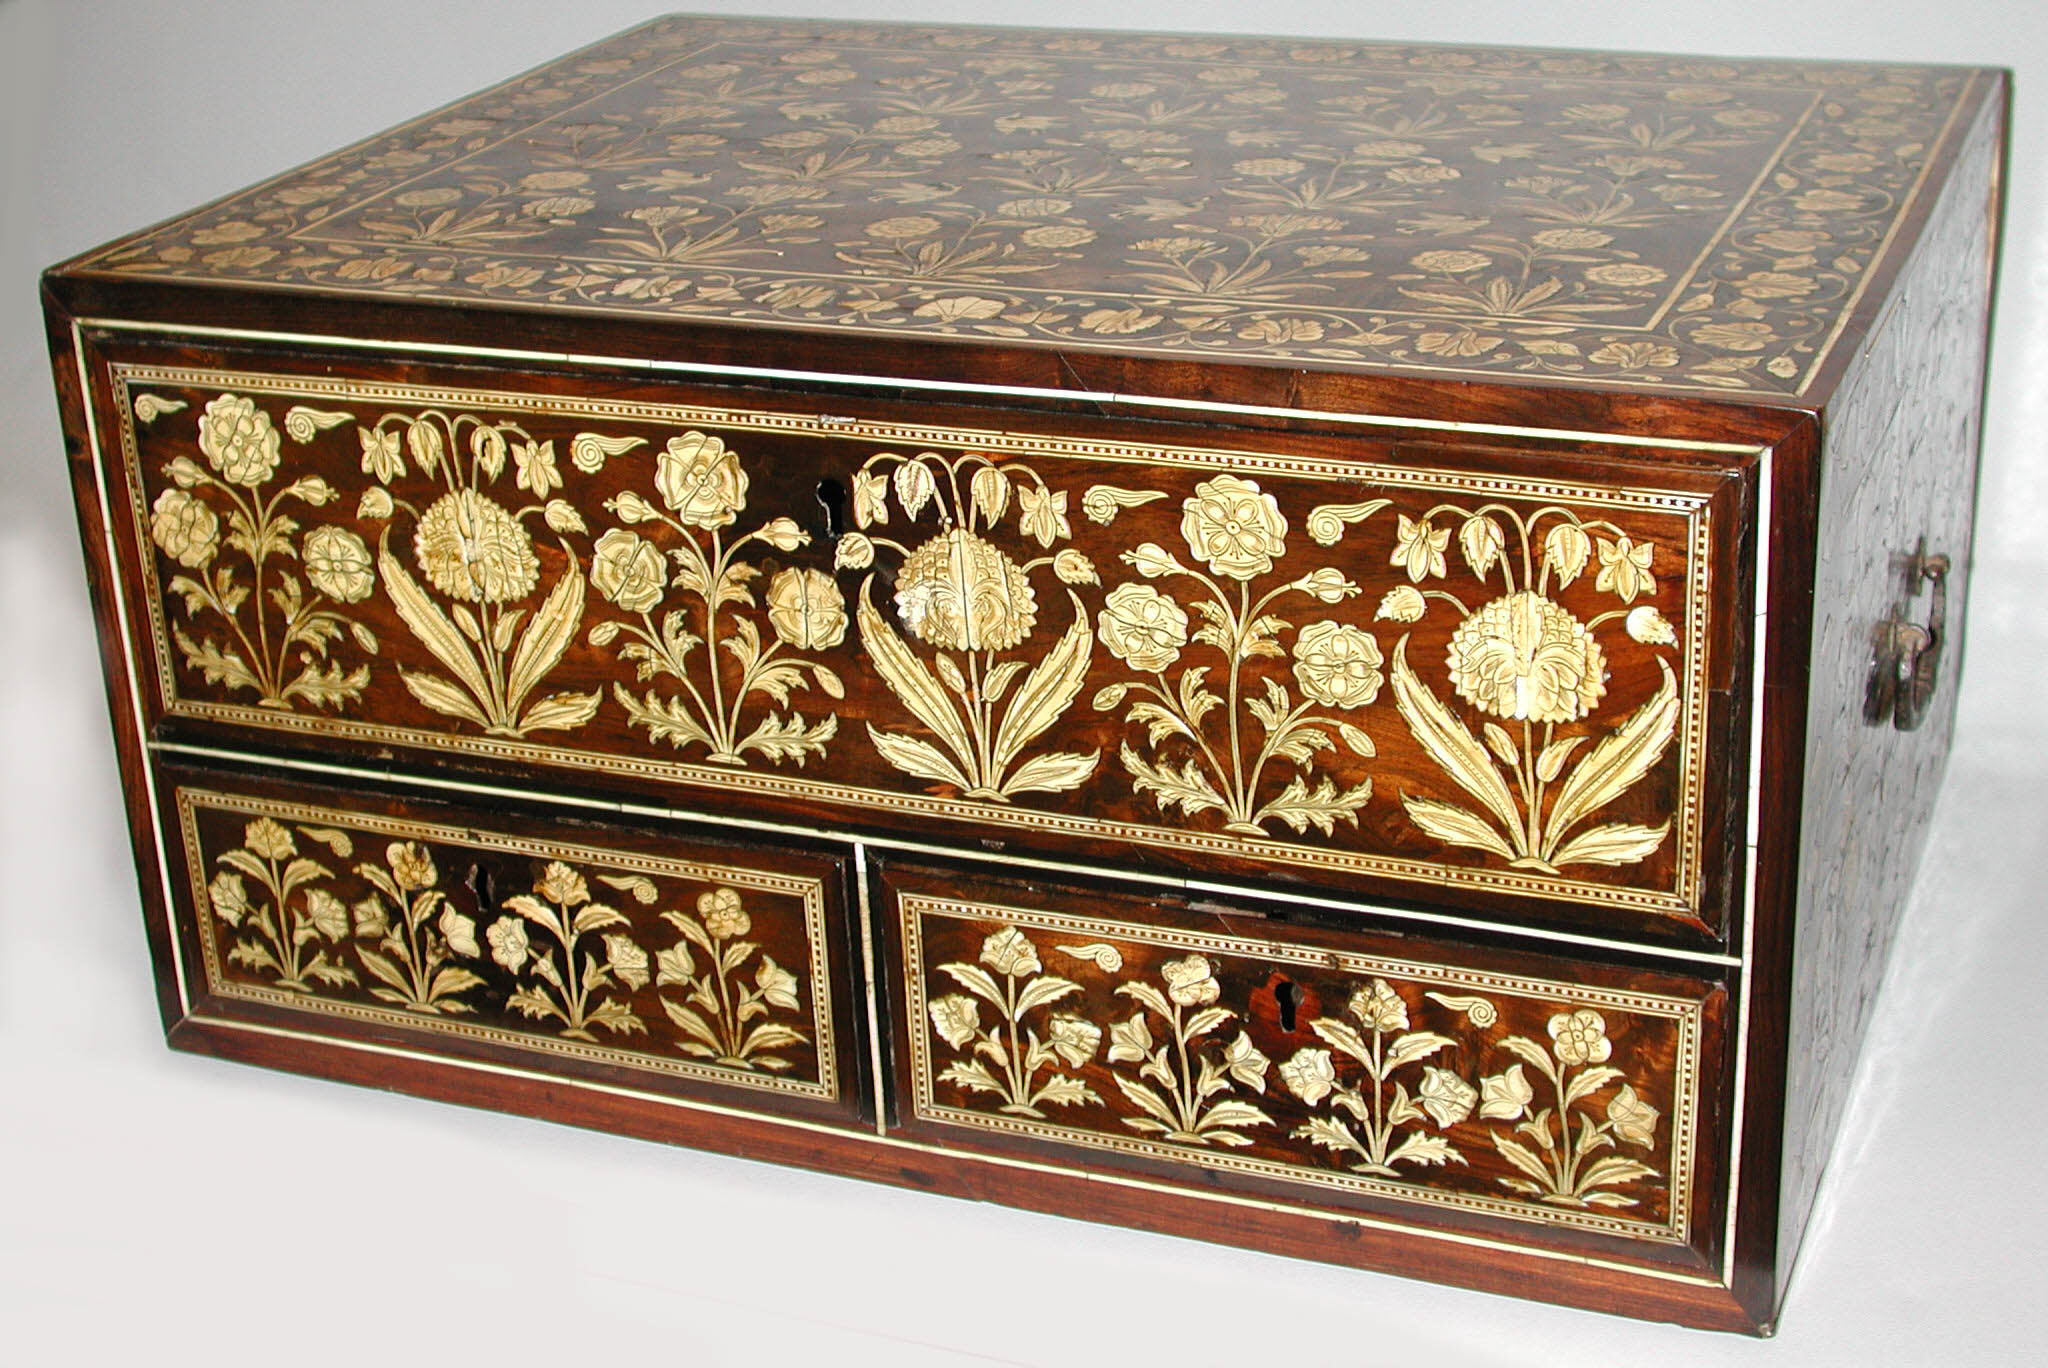 Flower-style wooden box